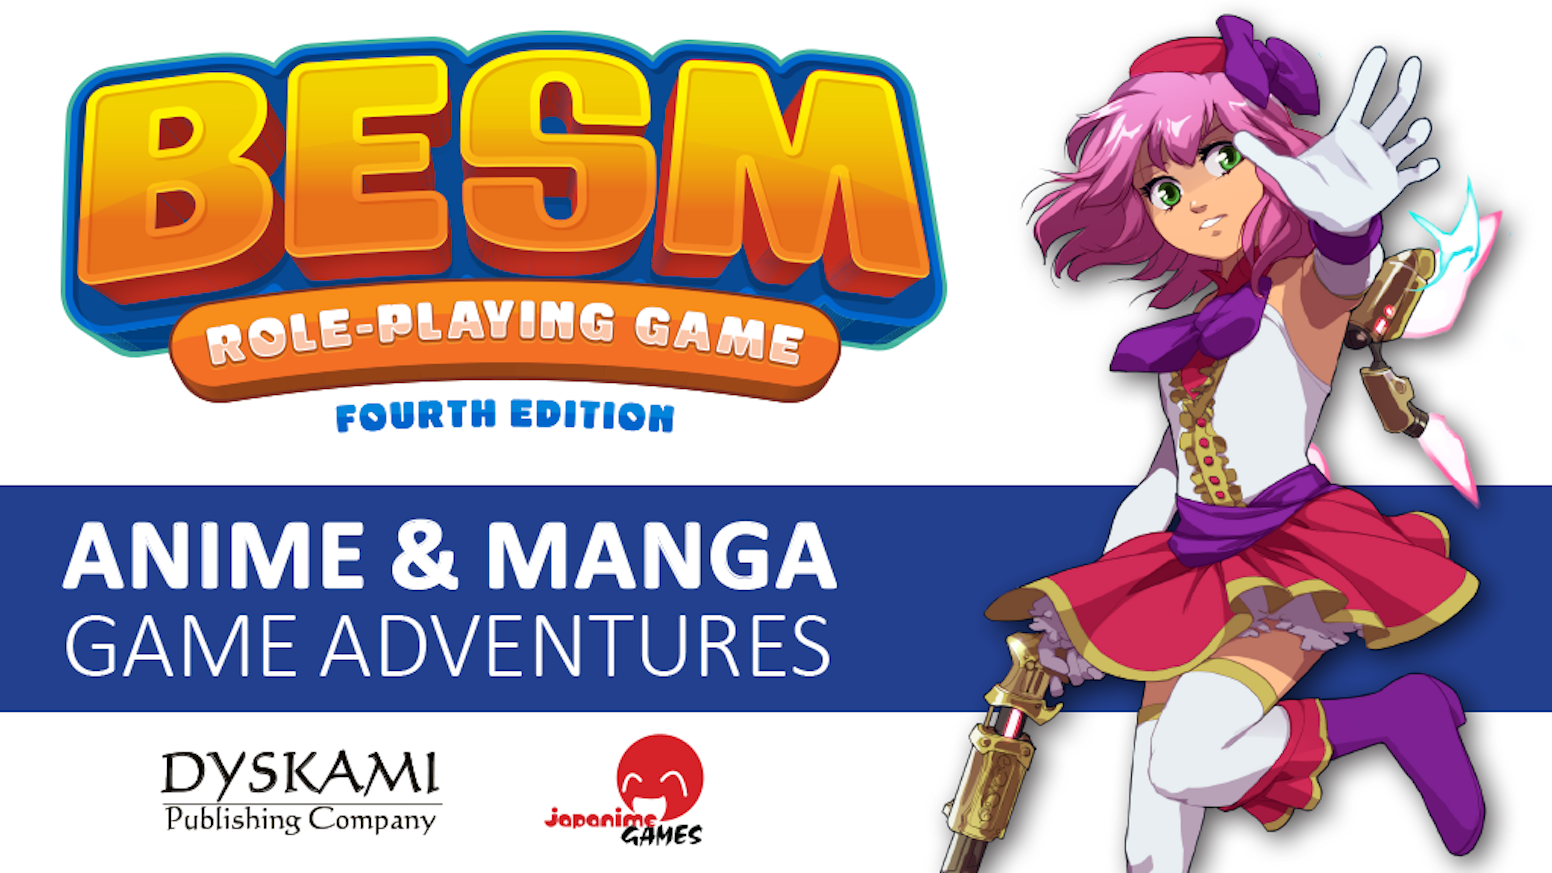 Your ultimate companion for multi-genre anime and manga role-playing adventures!